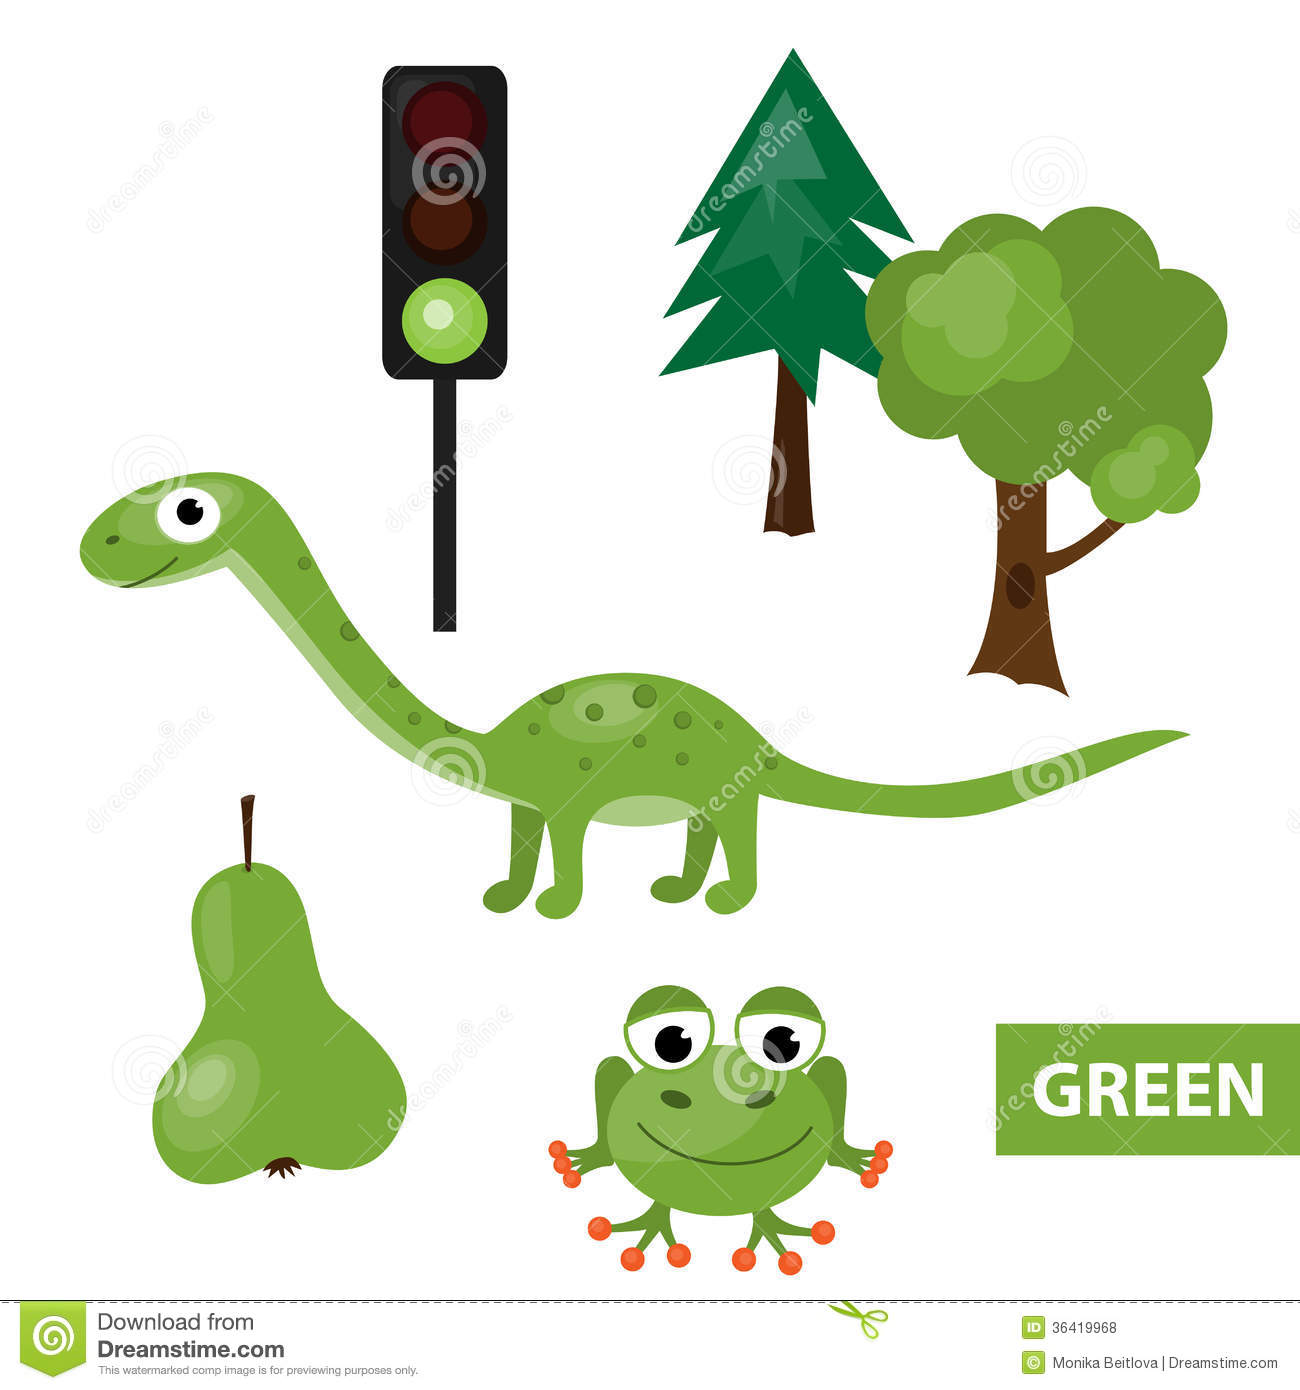 Things that are green in color